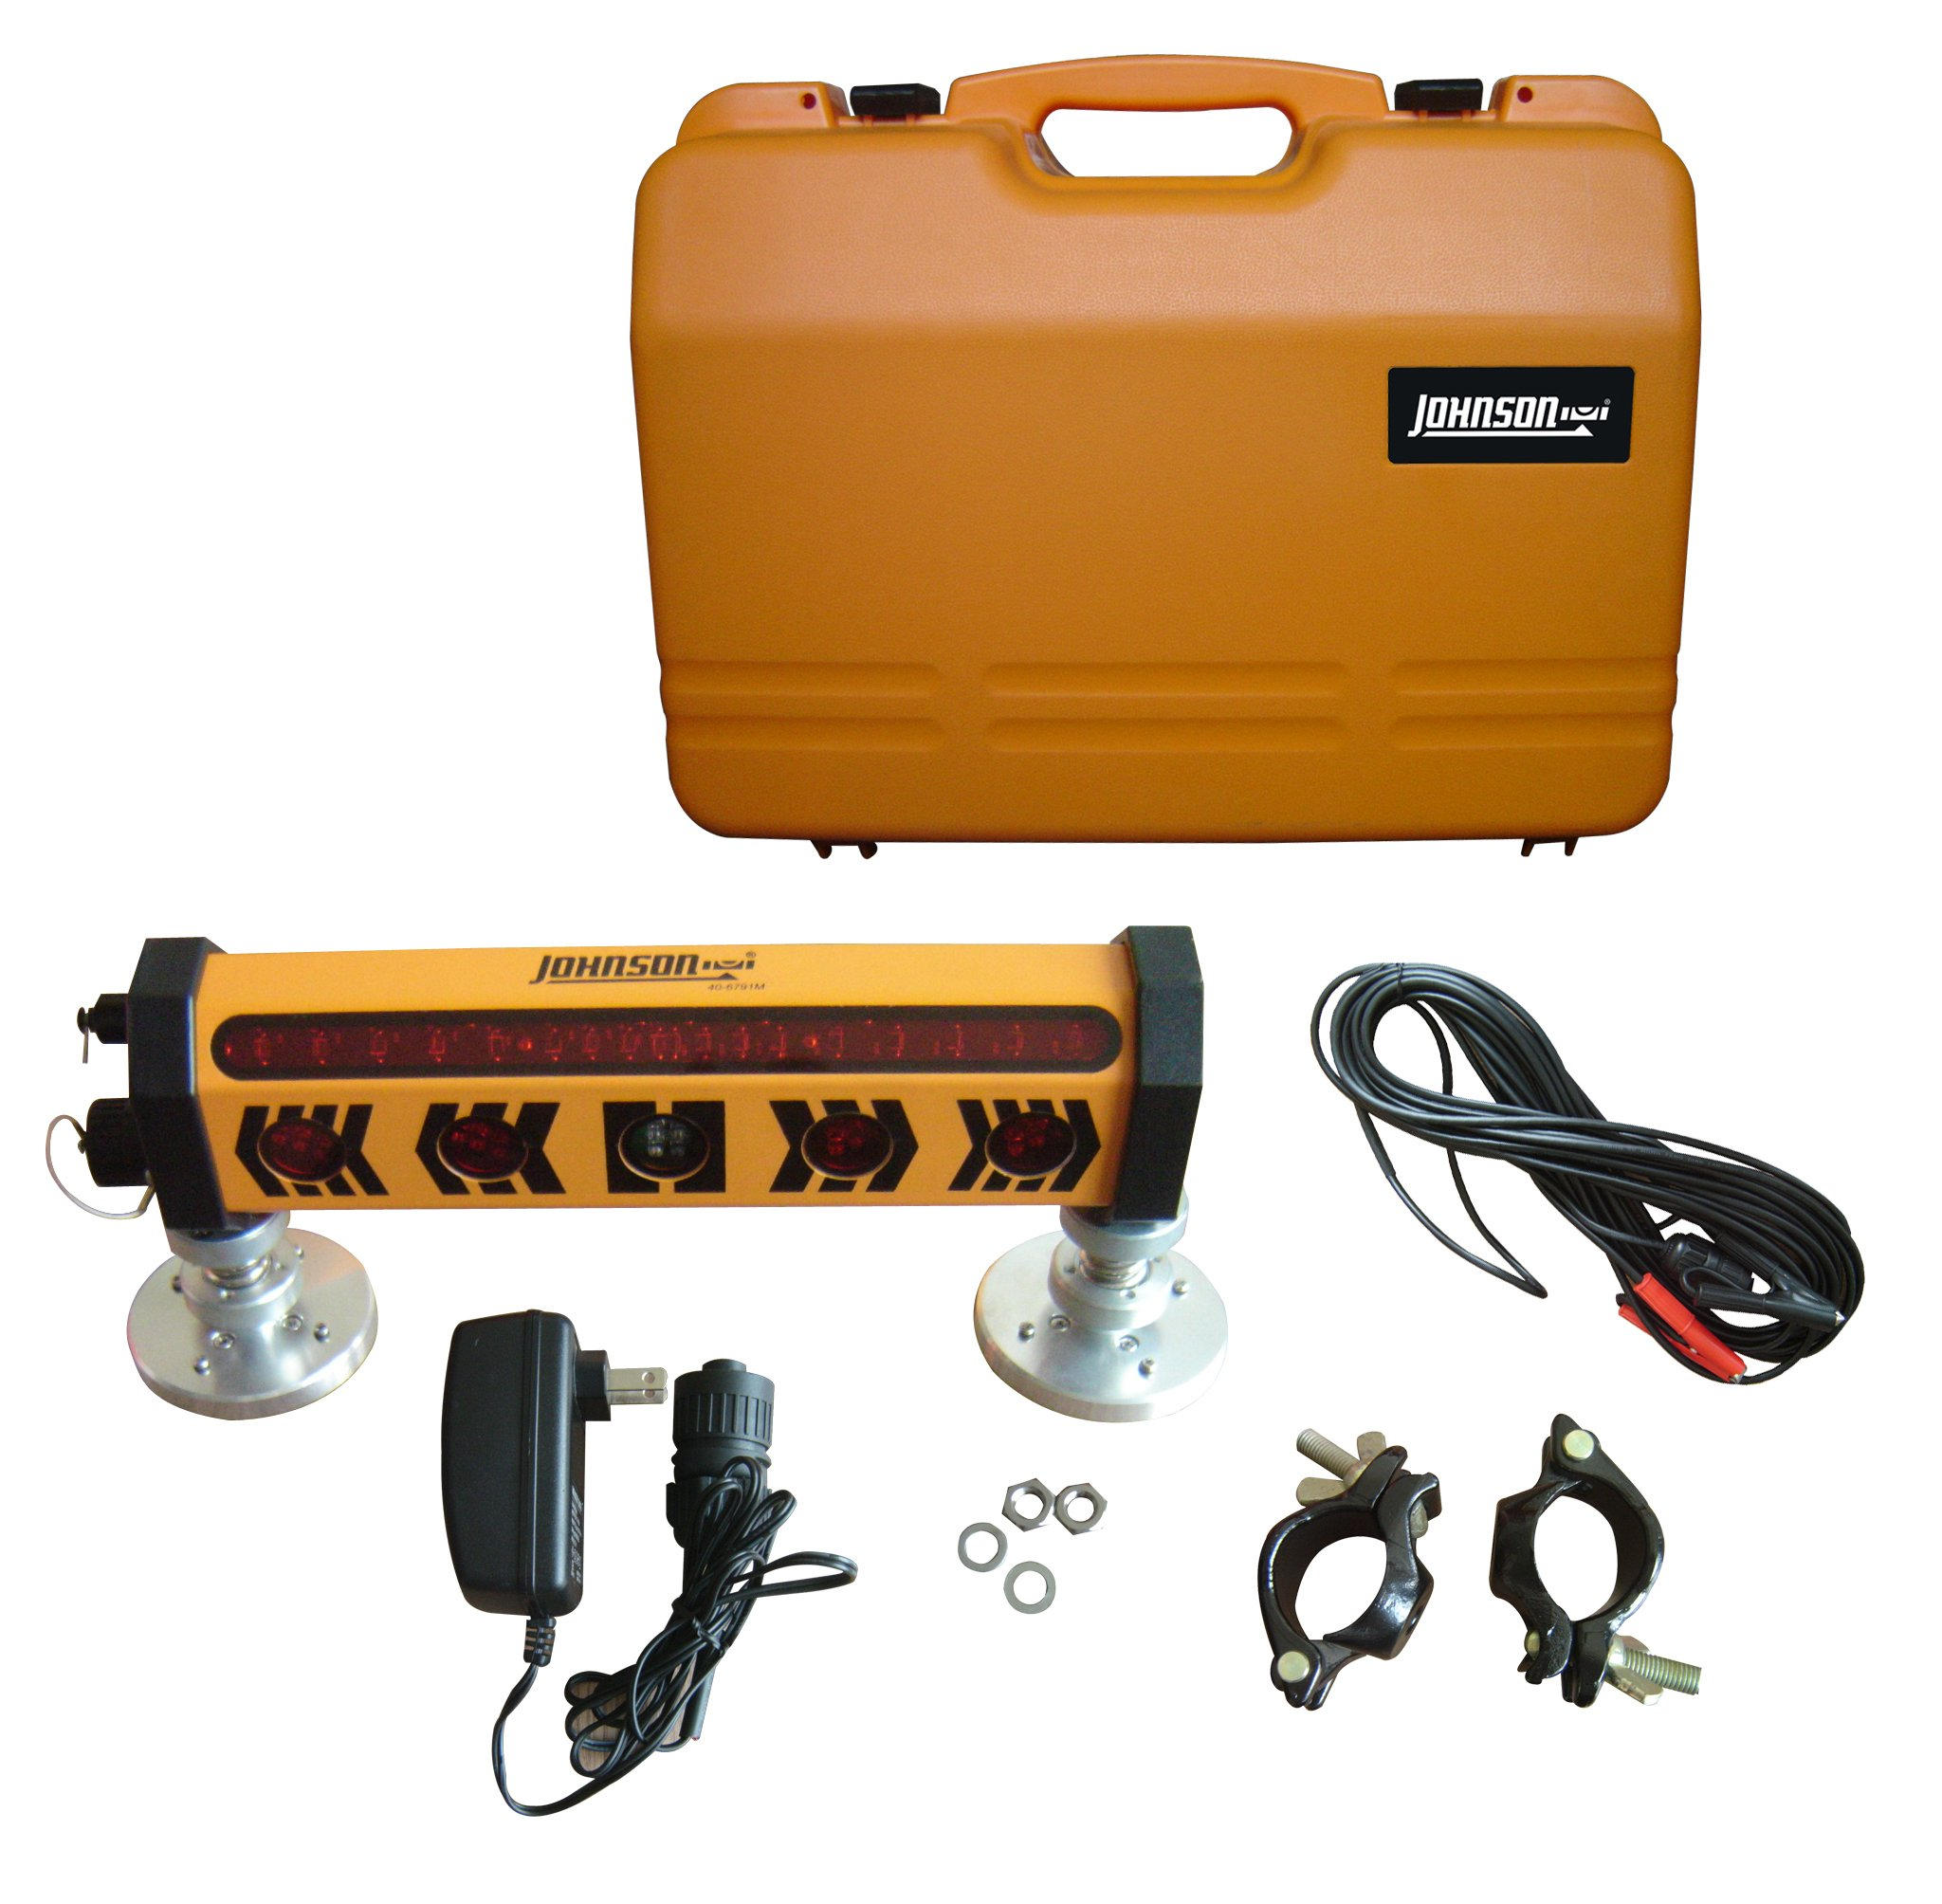 Johnson 40-6791 Machine Mountable 360-Degree Laser Detector with Clamp and Magnet